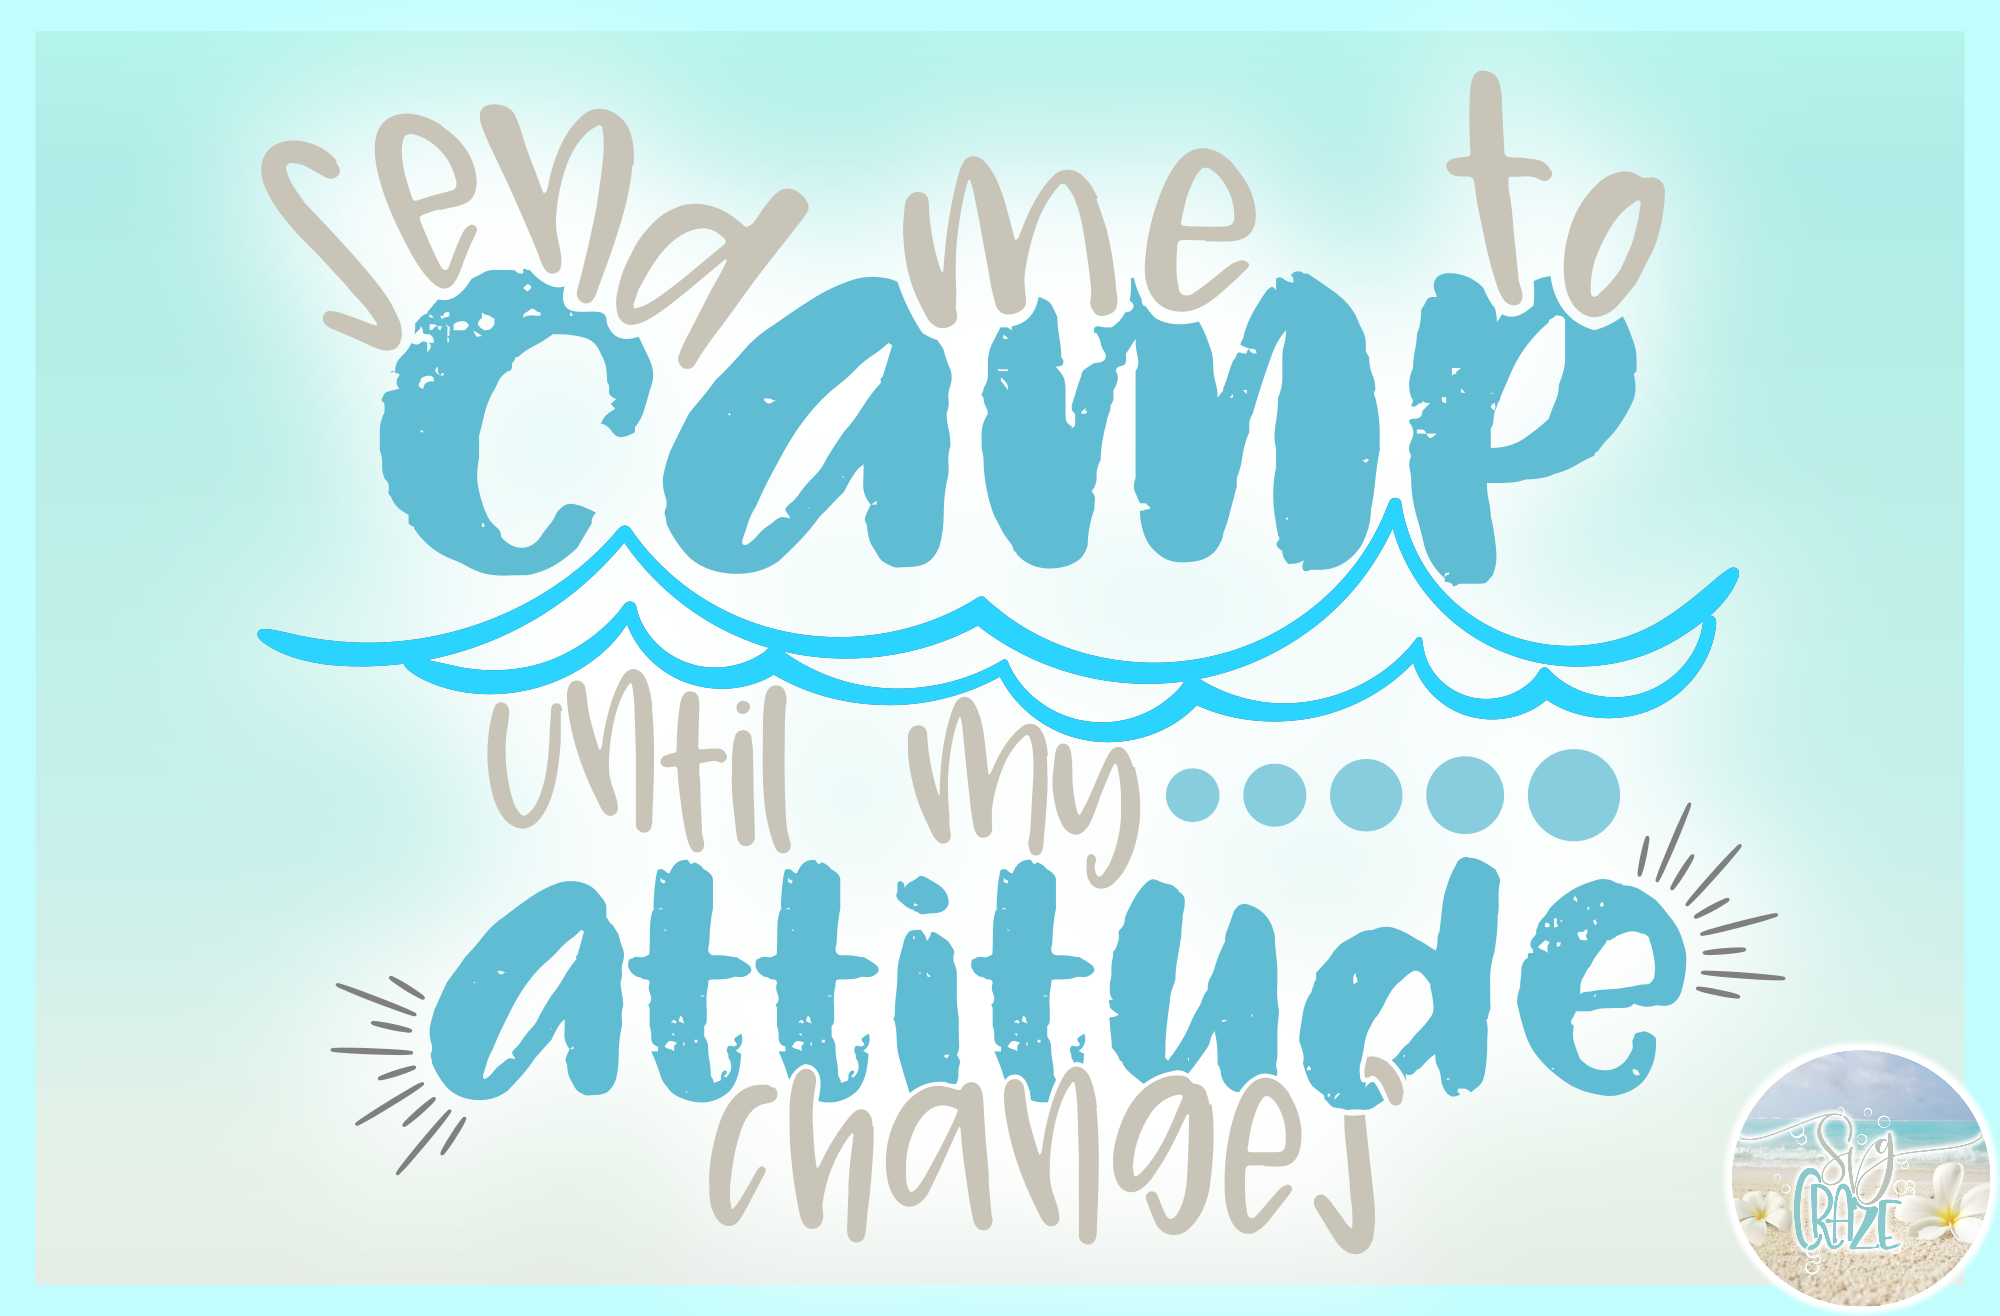 Send Me To Camp Until My Attitude Changes Quote SVG example image 3